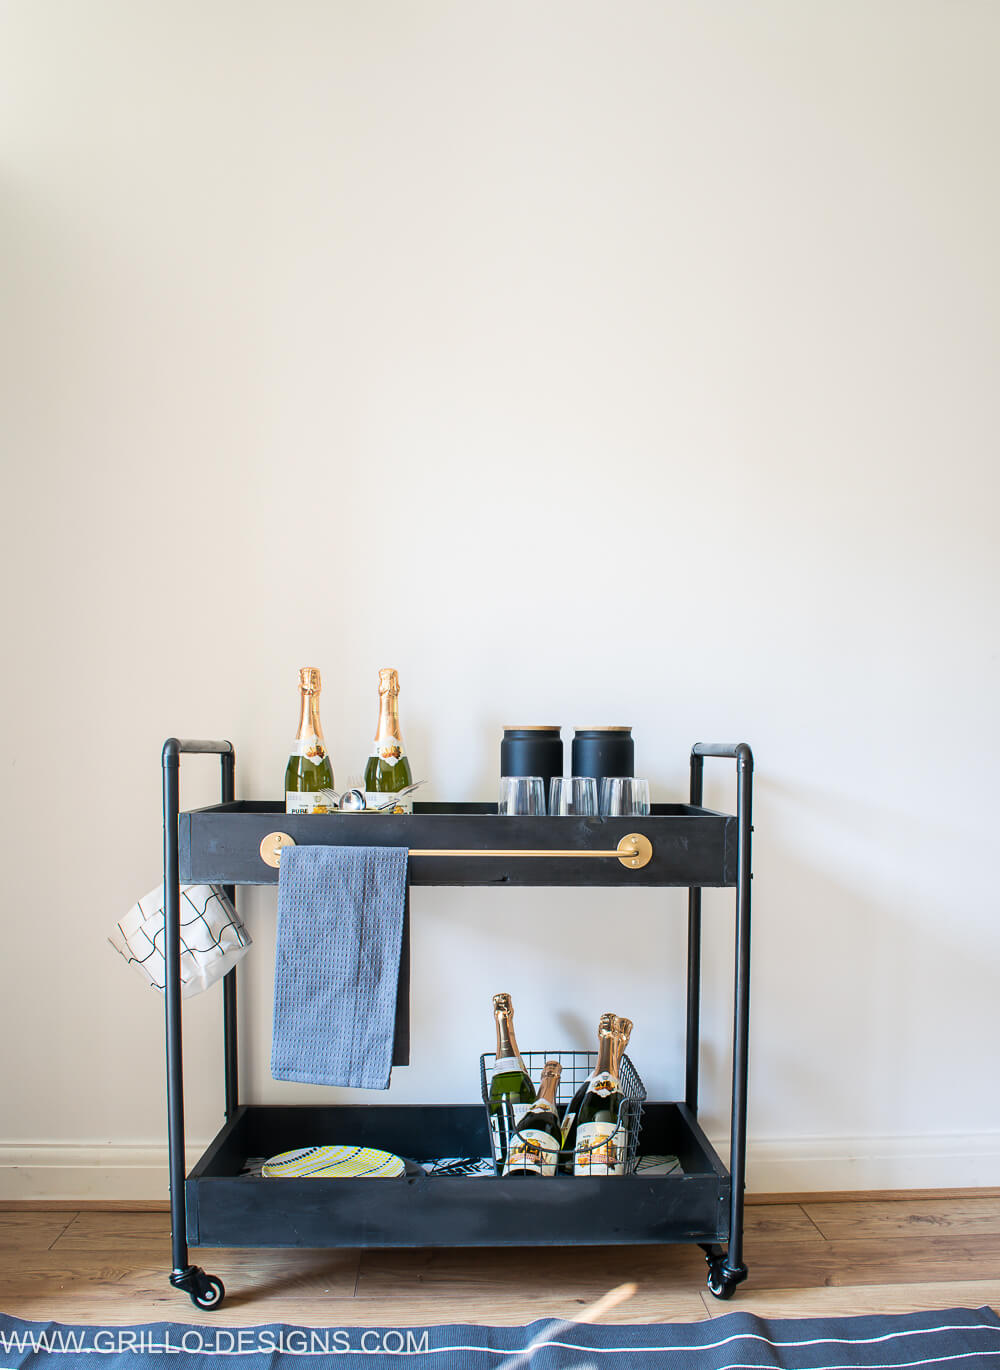 How to style a rolling bar cart / grillo designs